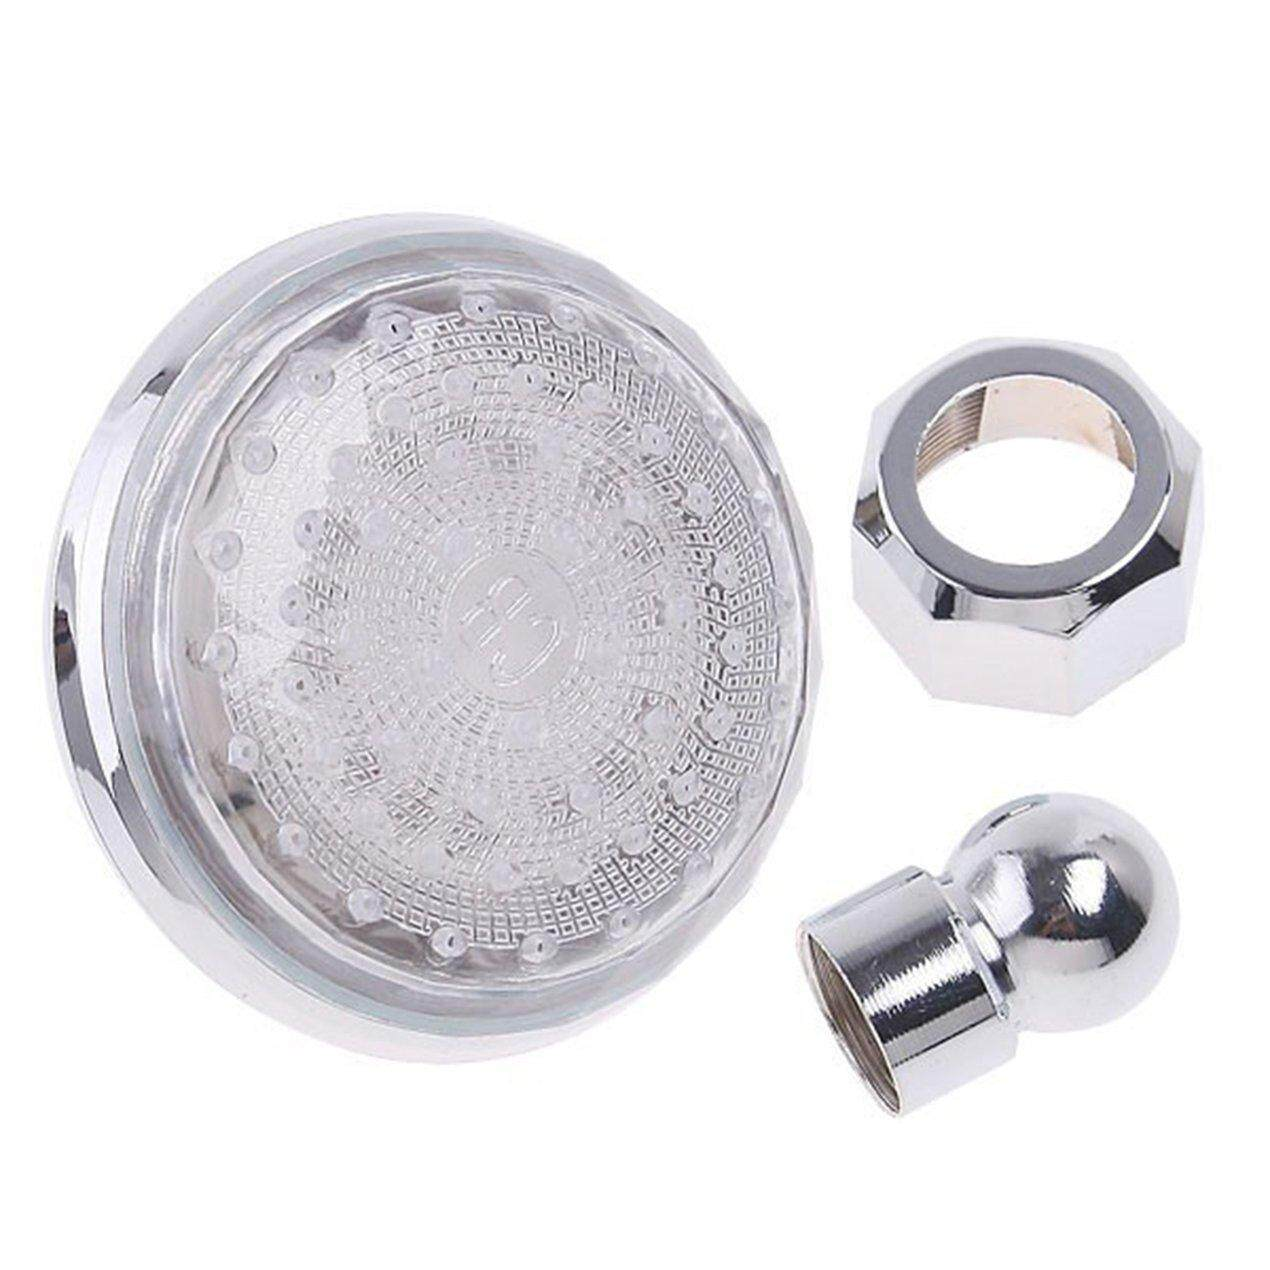 Best Sales Led Small Top Spray Flashing Round With Pattern Small Top Spray Ld8010-A2